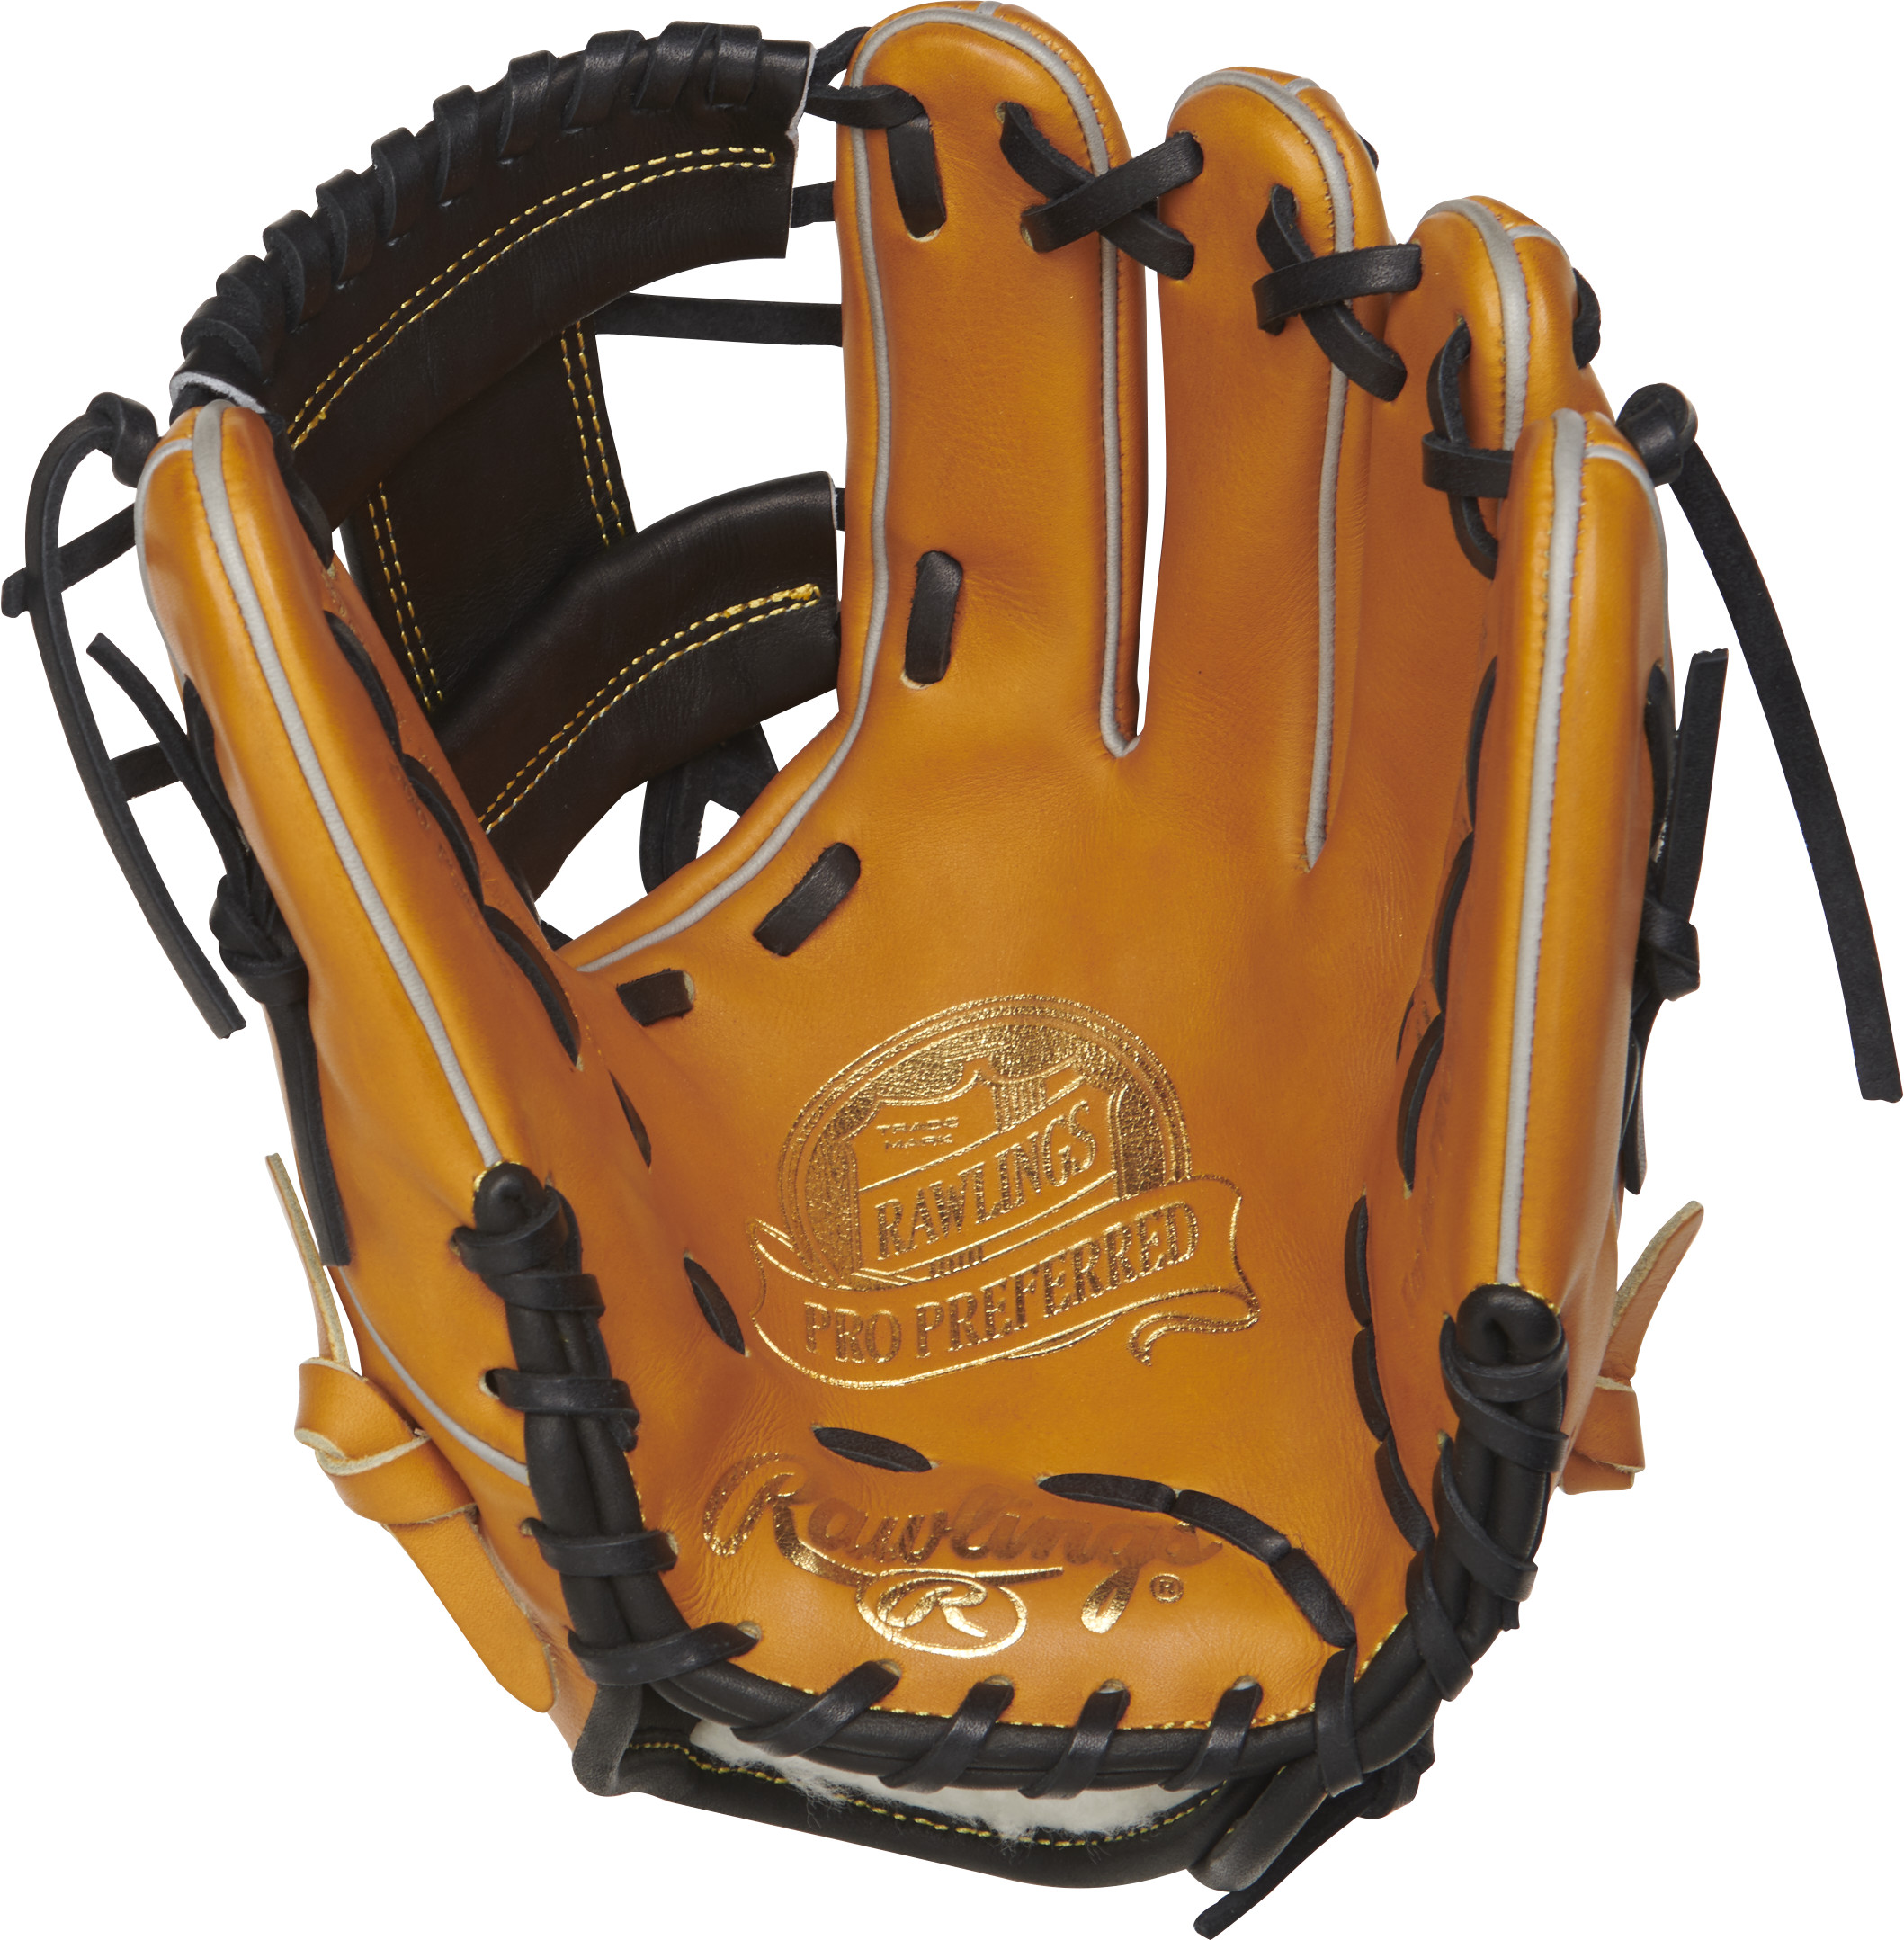 http://www.bestbatdeals.com/images/gloves/rawlings/PROS204-2RTB-1.jpg